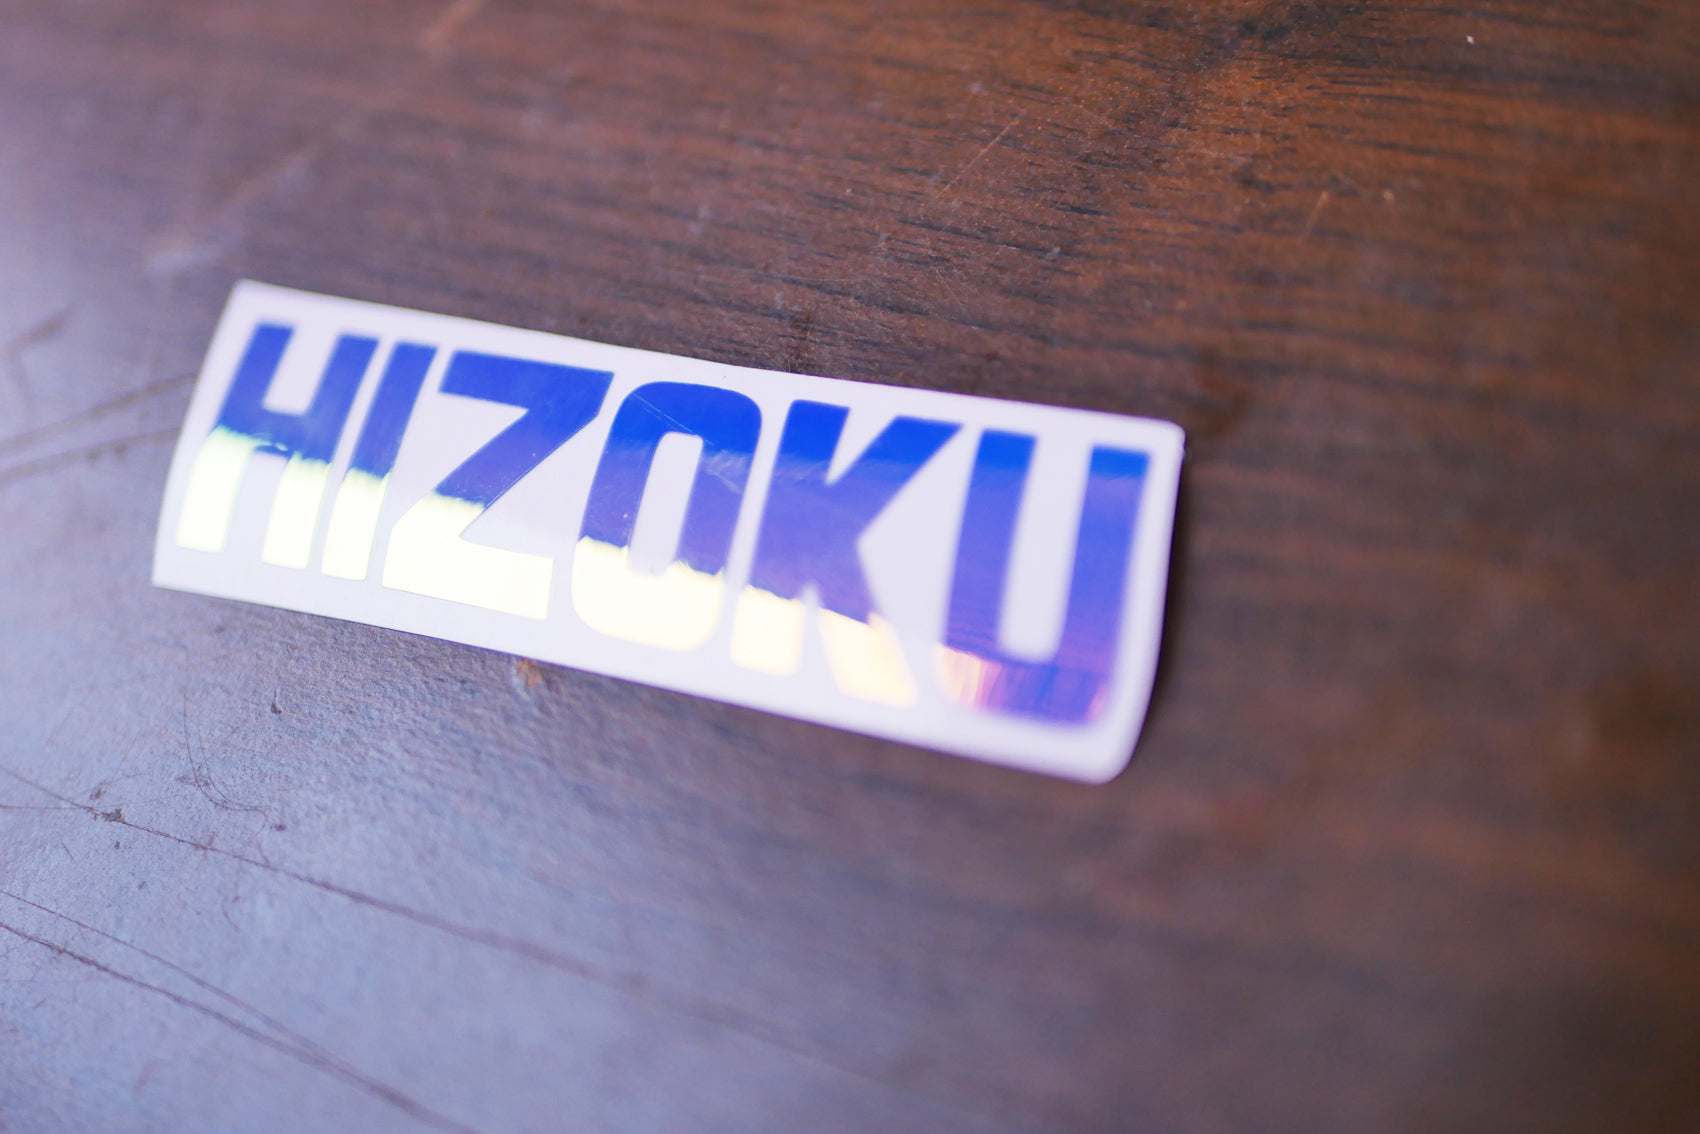 Hizoku Logo Decal Small